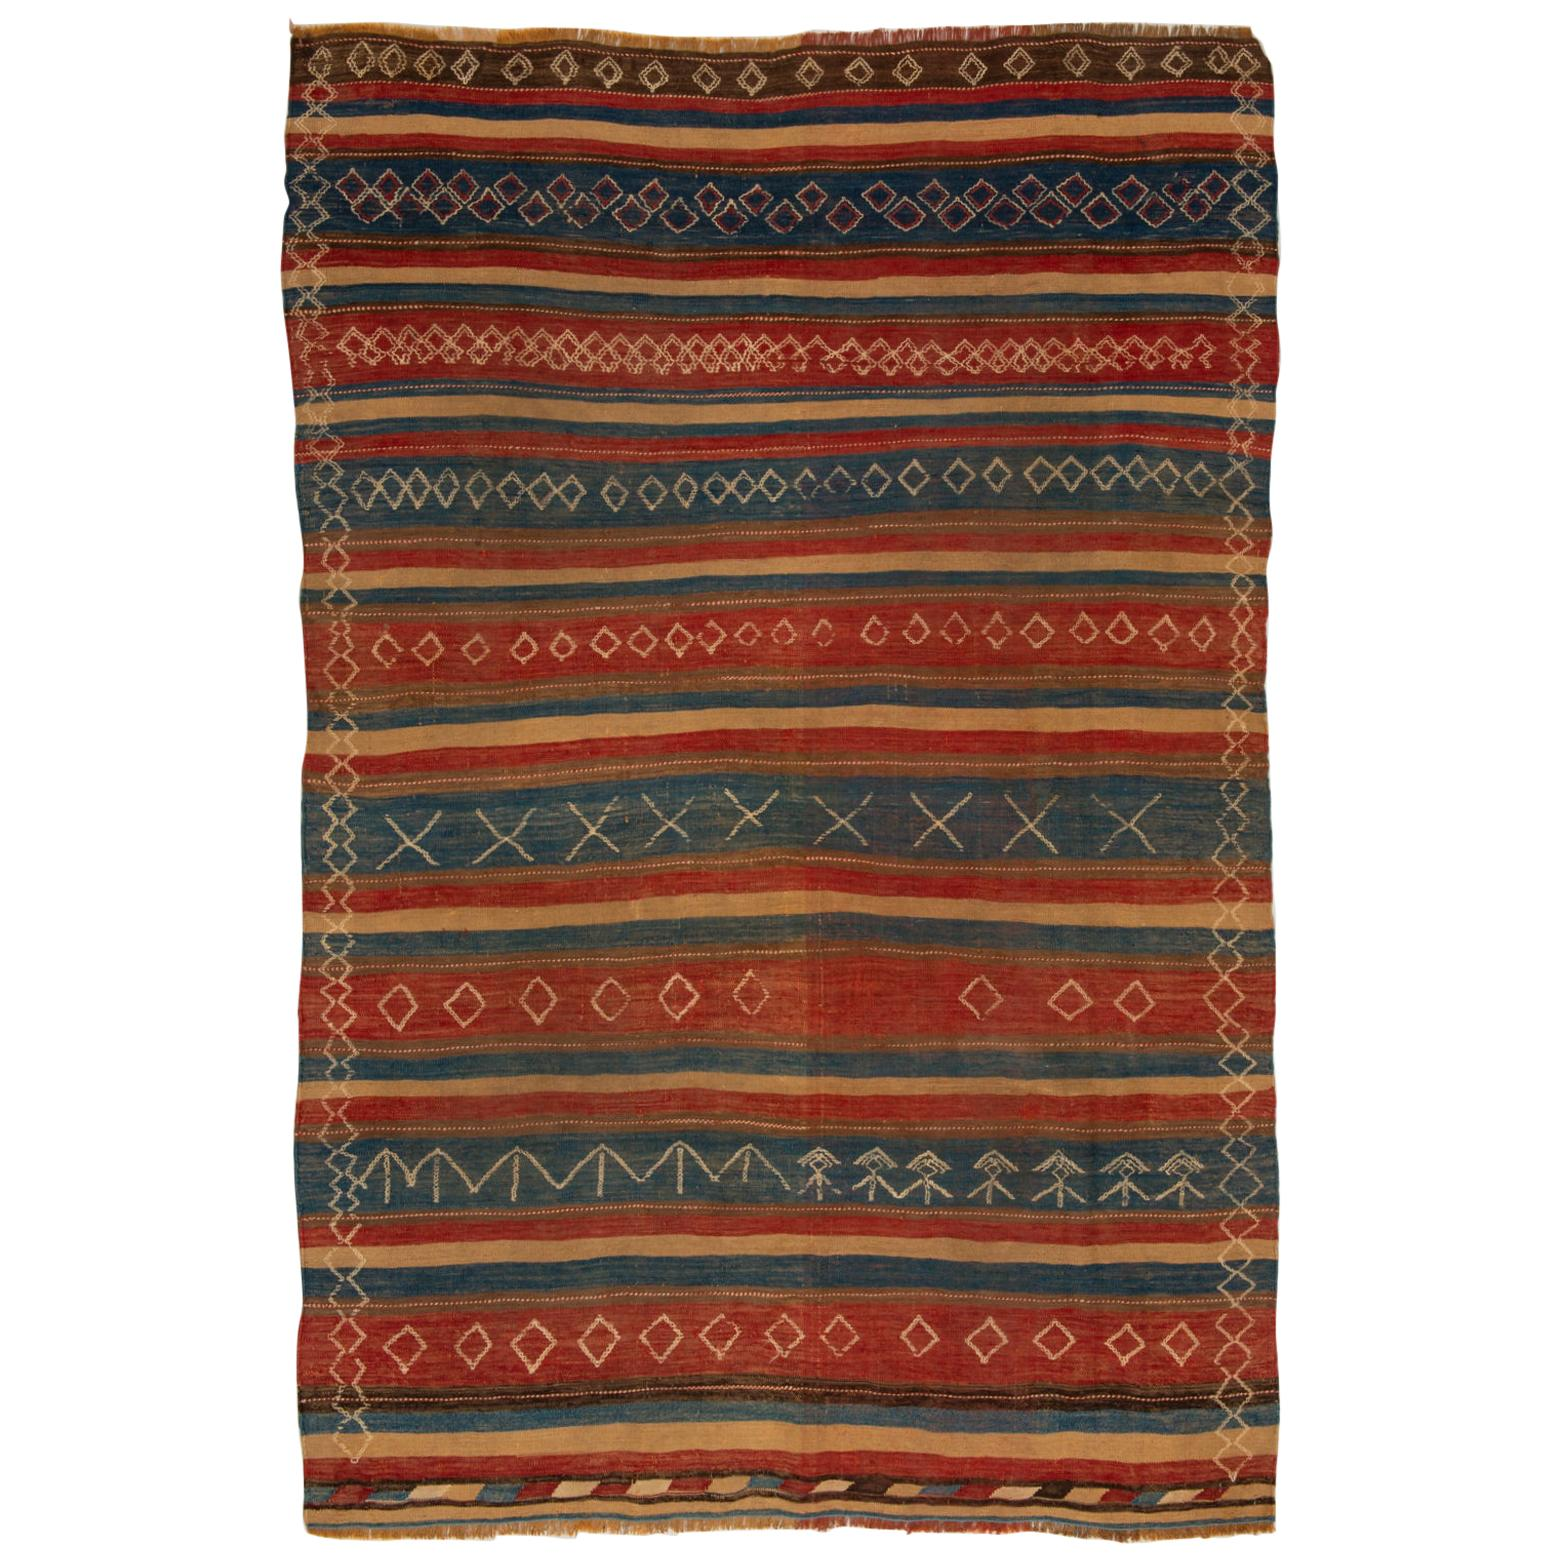 Rare Caucasian Verneh Rug from Private Collection